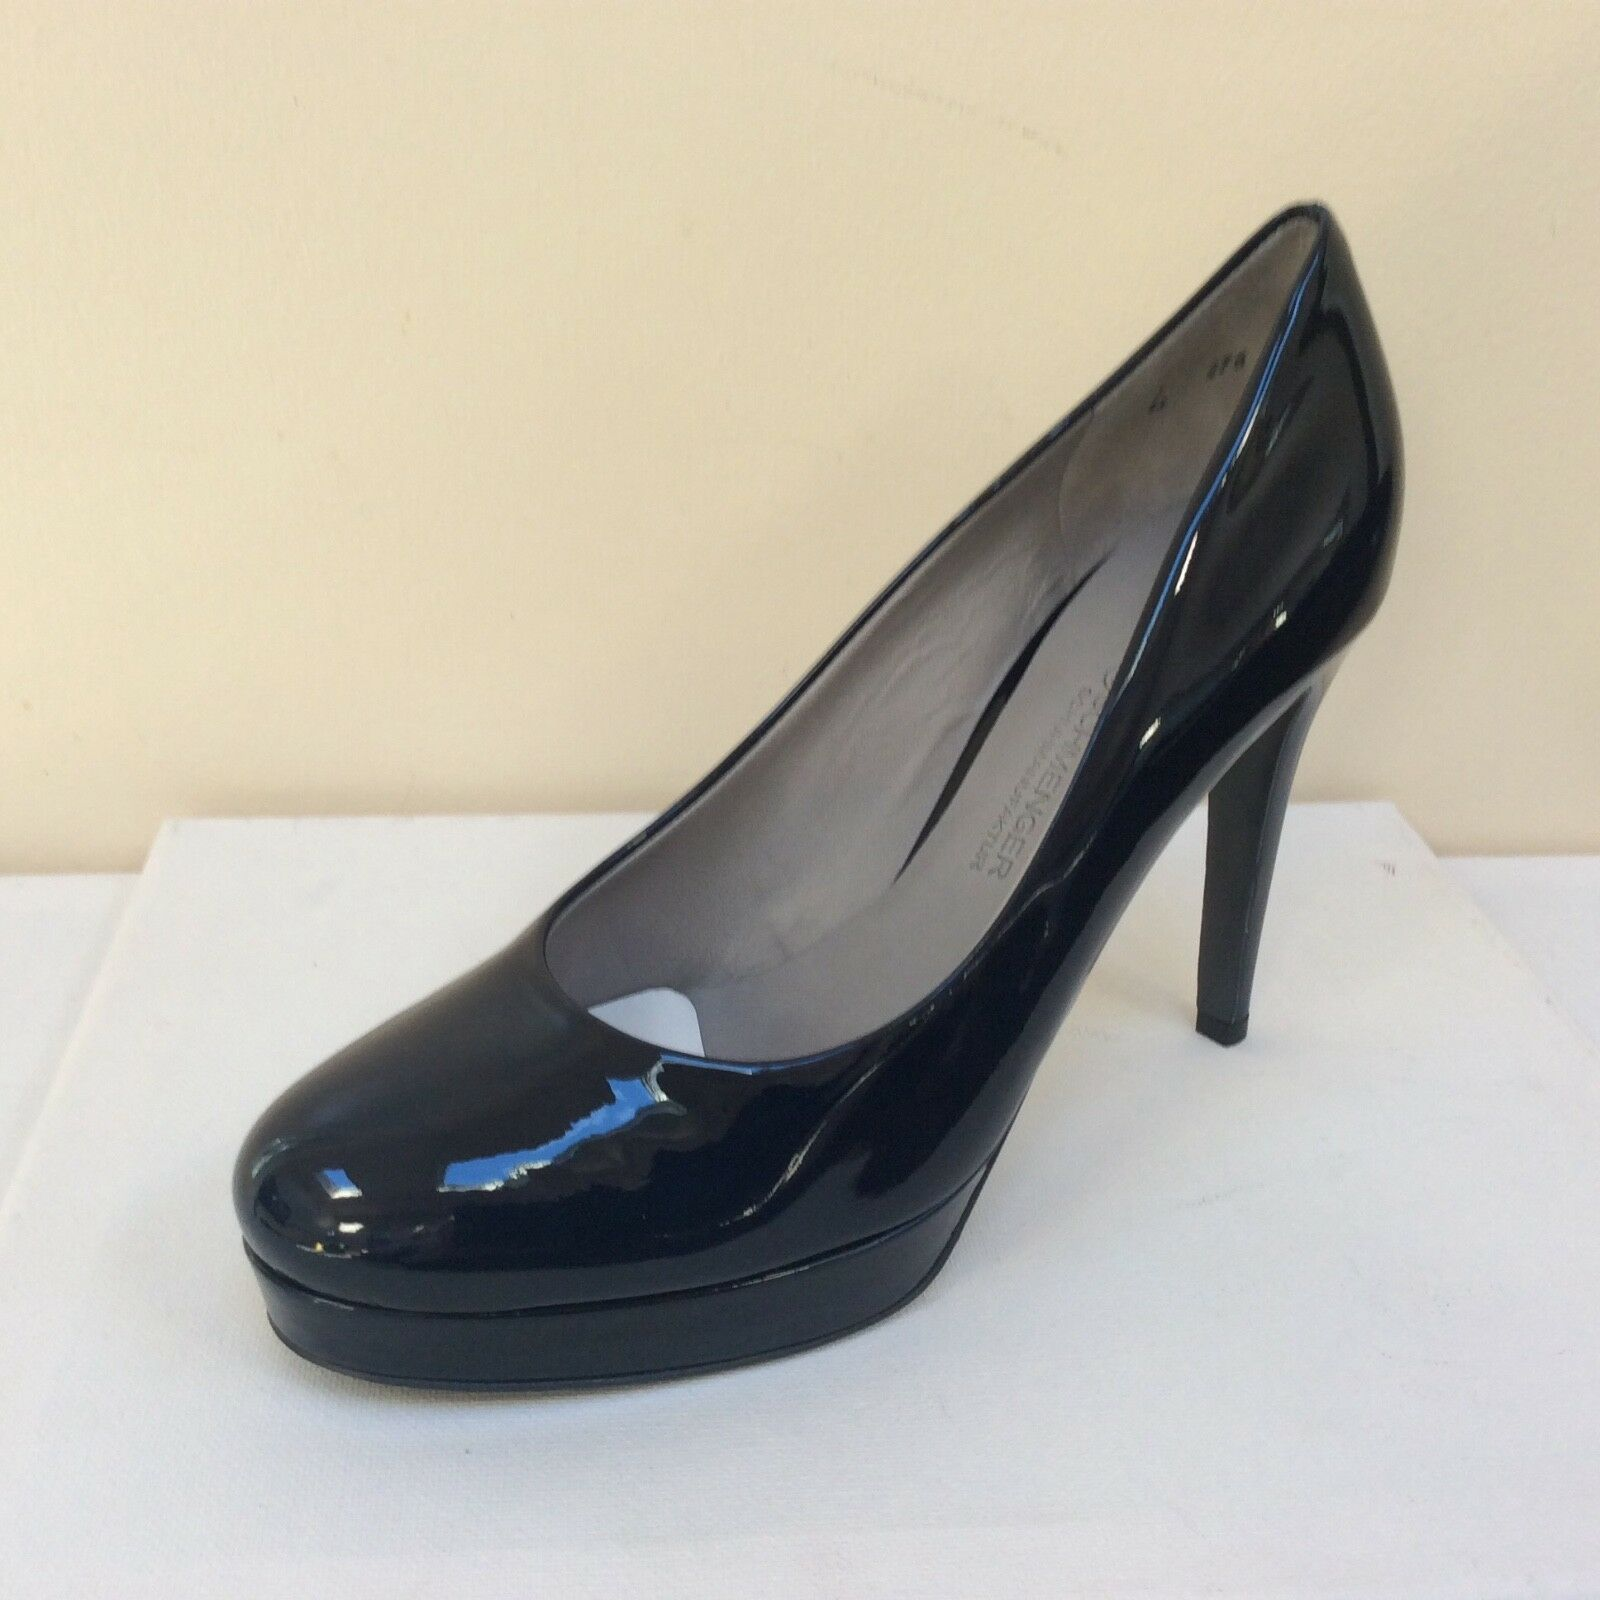 K&S Sheyla french navy patent platform courts, UK 4/EU 37,   BNWB